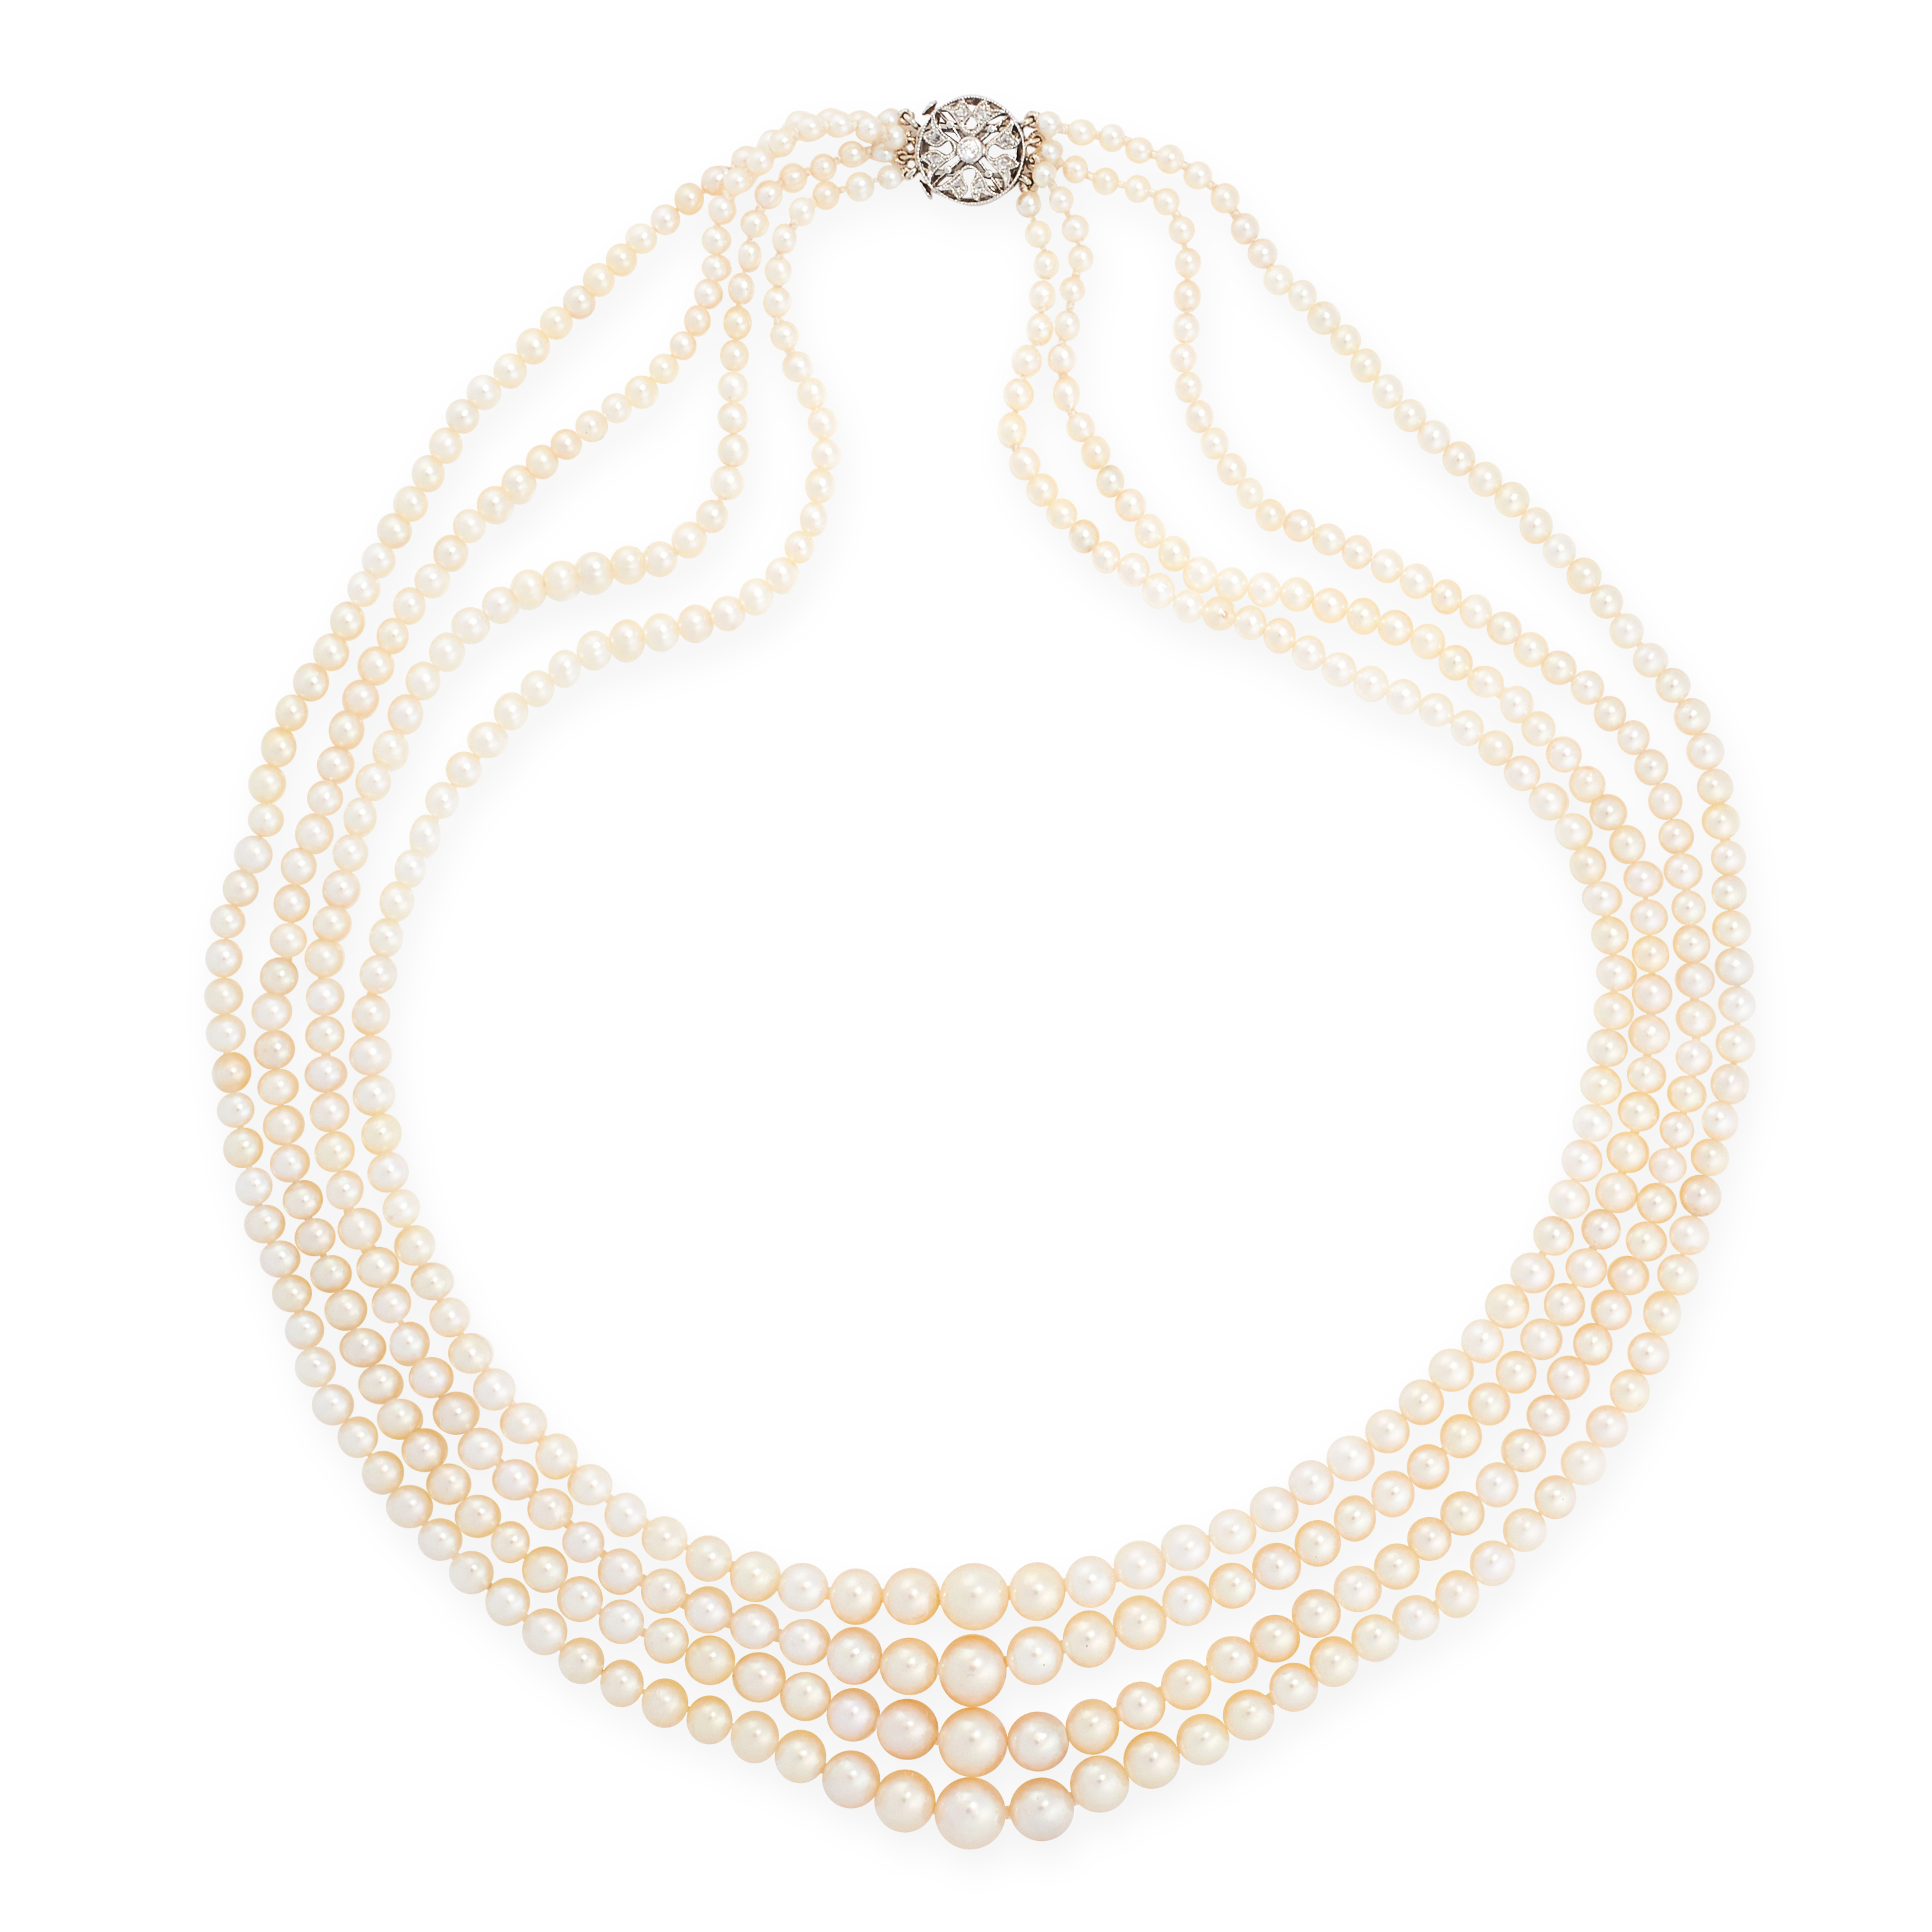 PEARL AND DIAMOND NECKLACE designed as four rows of graduated pearls measuring 2.5-7.1mm diameter,